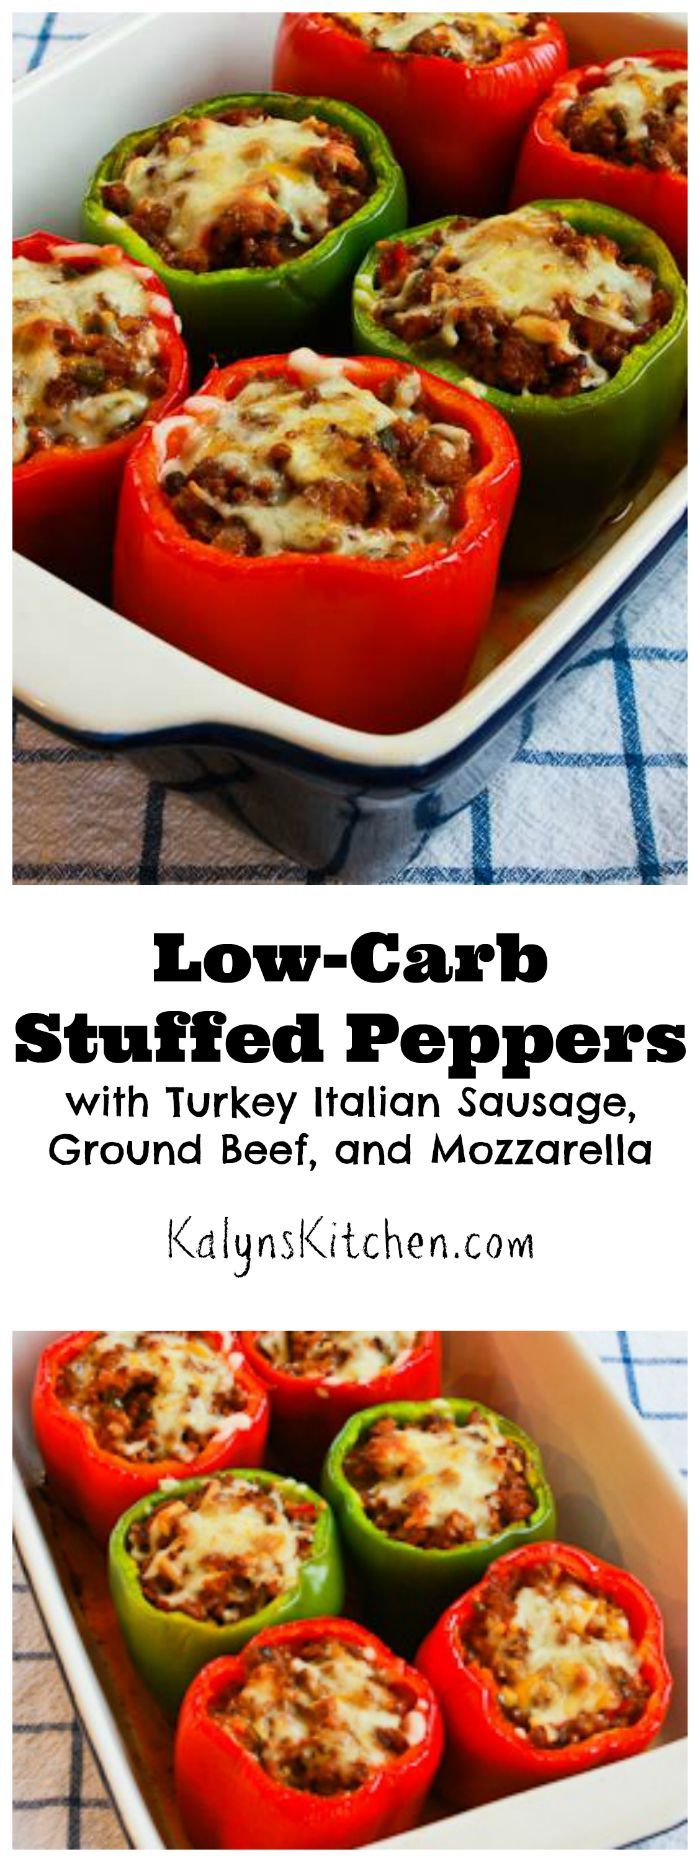 Peppers are great in the fall, and these Low-Carb Stuffed Peppers with Turkey Italian Sausage, Ground Beef, and Mozzarella are easy and delicious. PIN NOW so you can make this when those gorgeous peppers show up! [from KalynsKitchen.com]